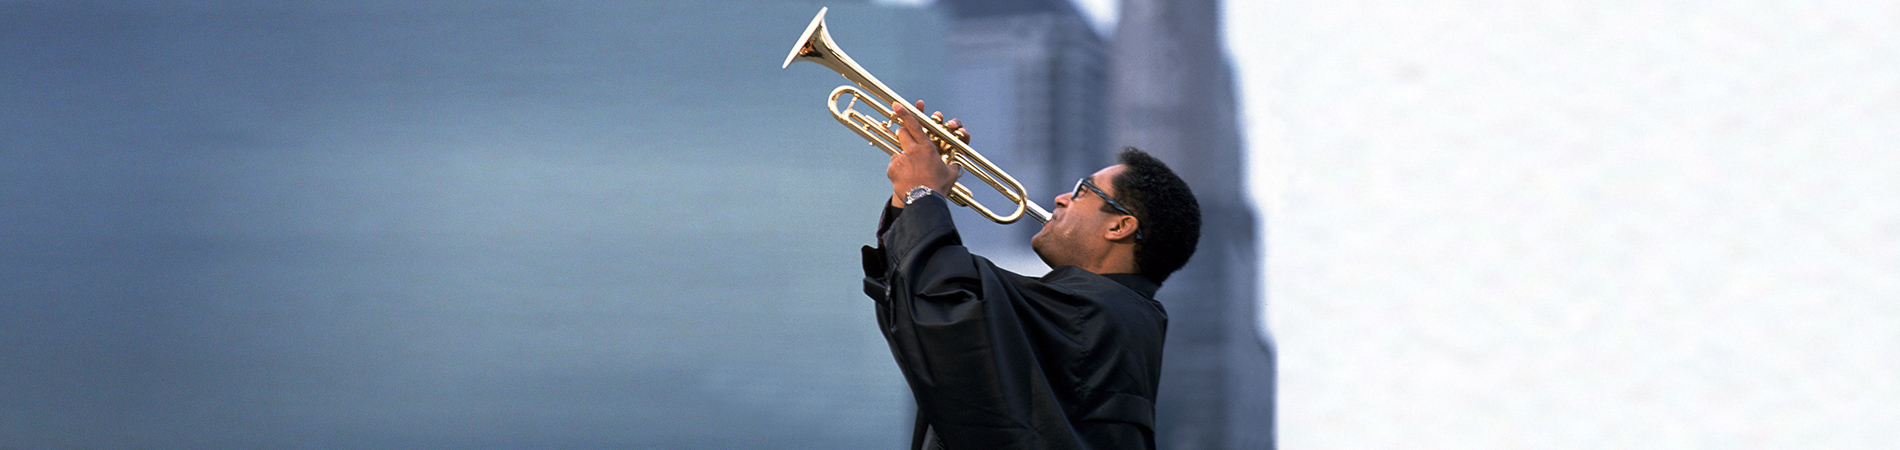 Trumpet player Jon Faddis